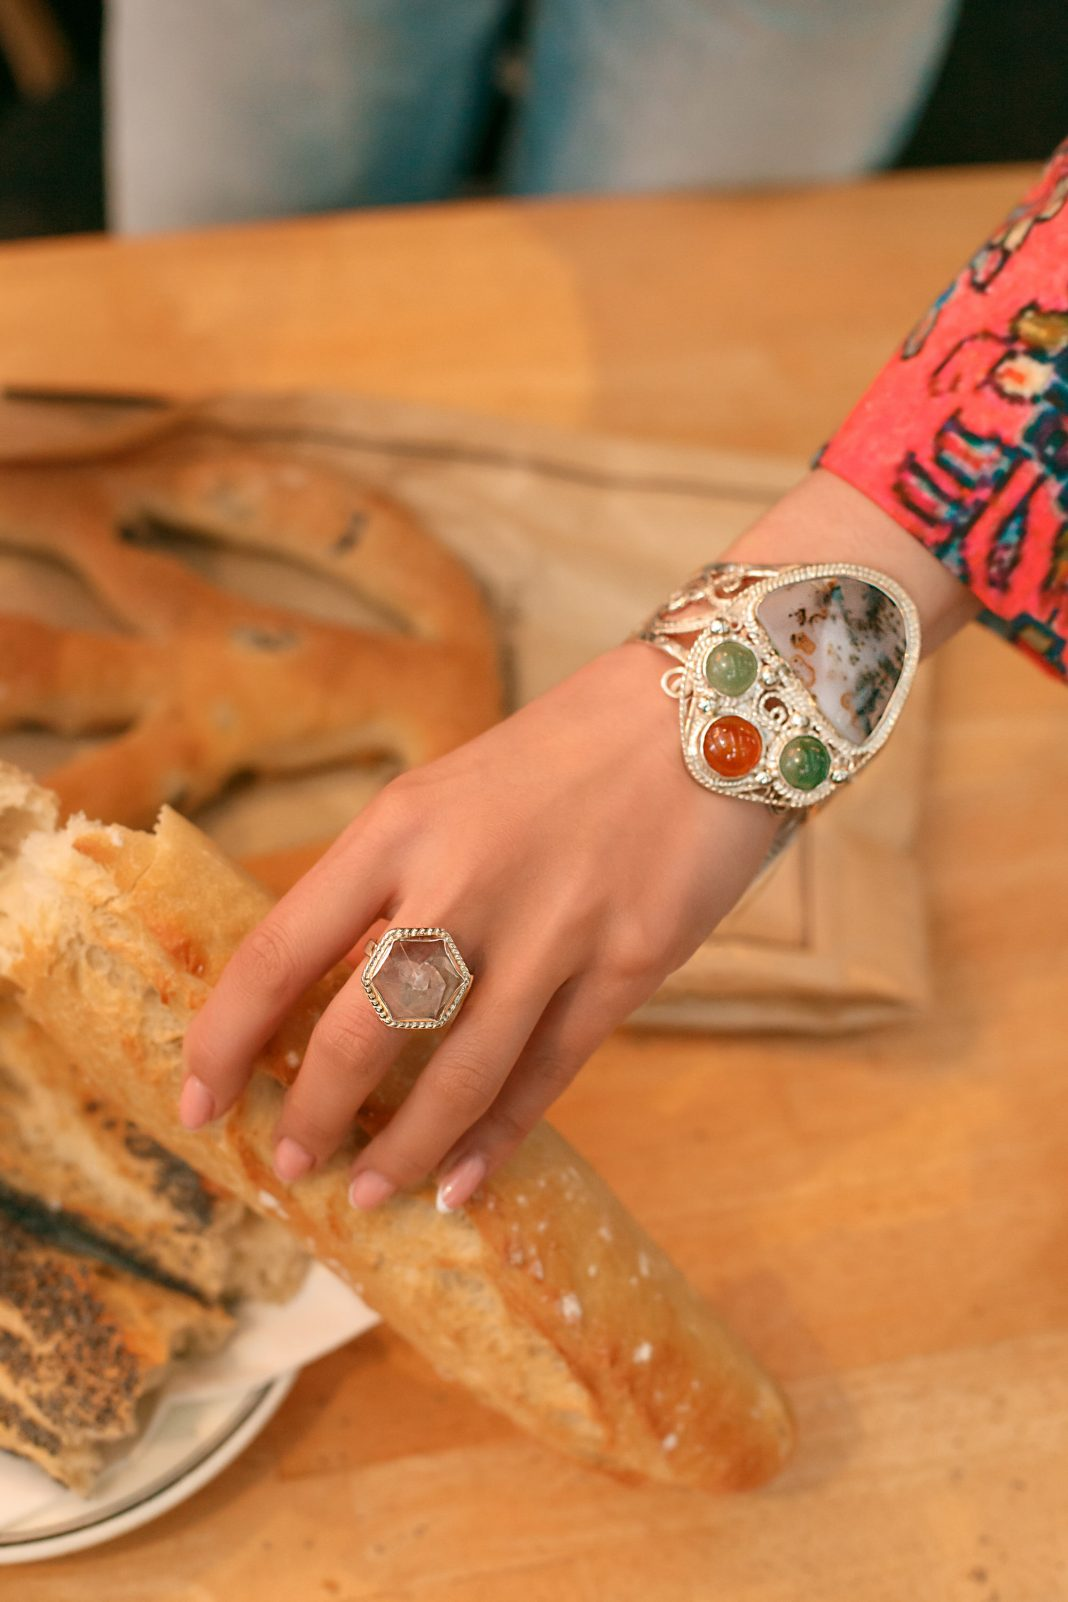 Preserving the traditions of ancient masters: Jewelry art of the Kazakh people